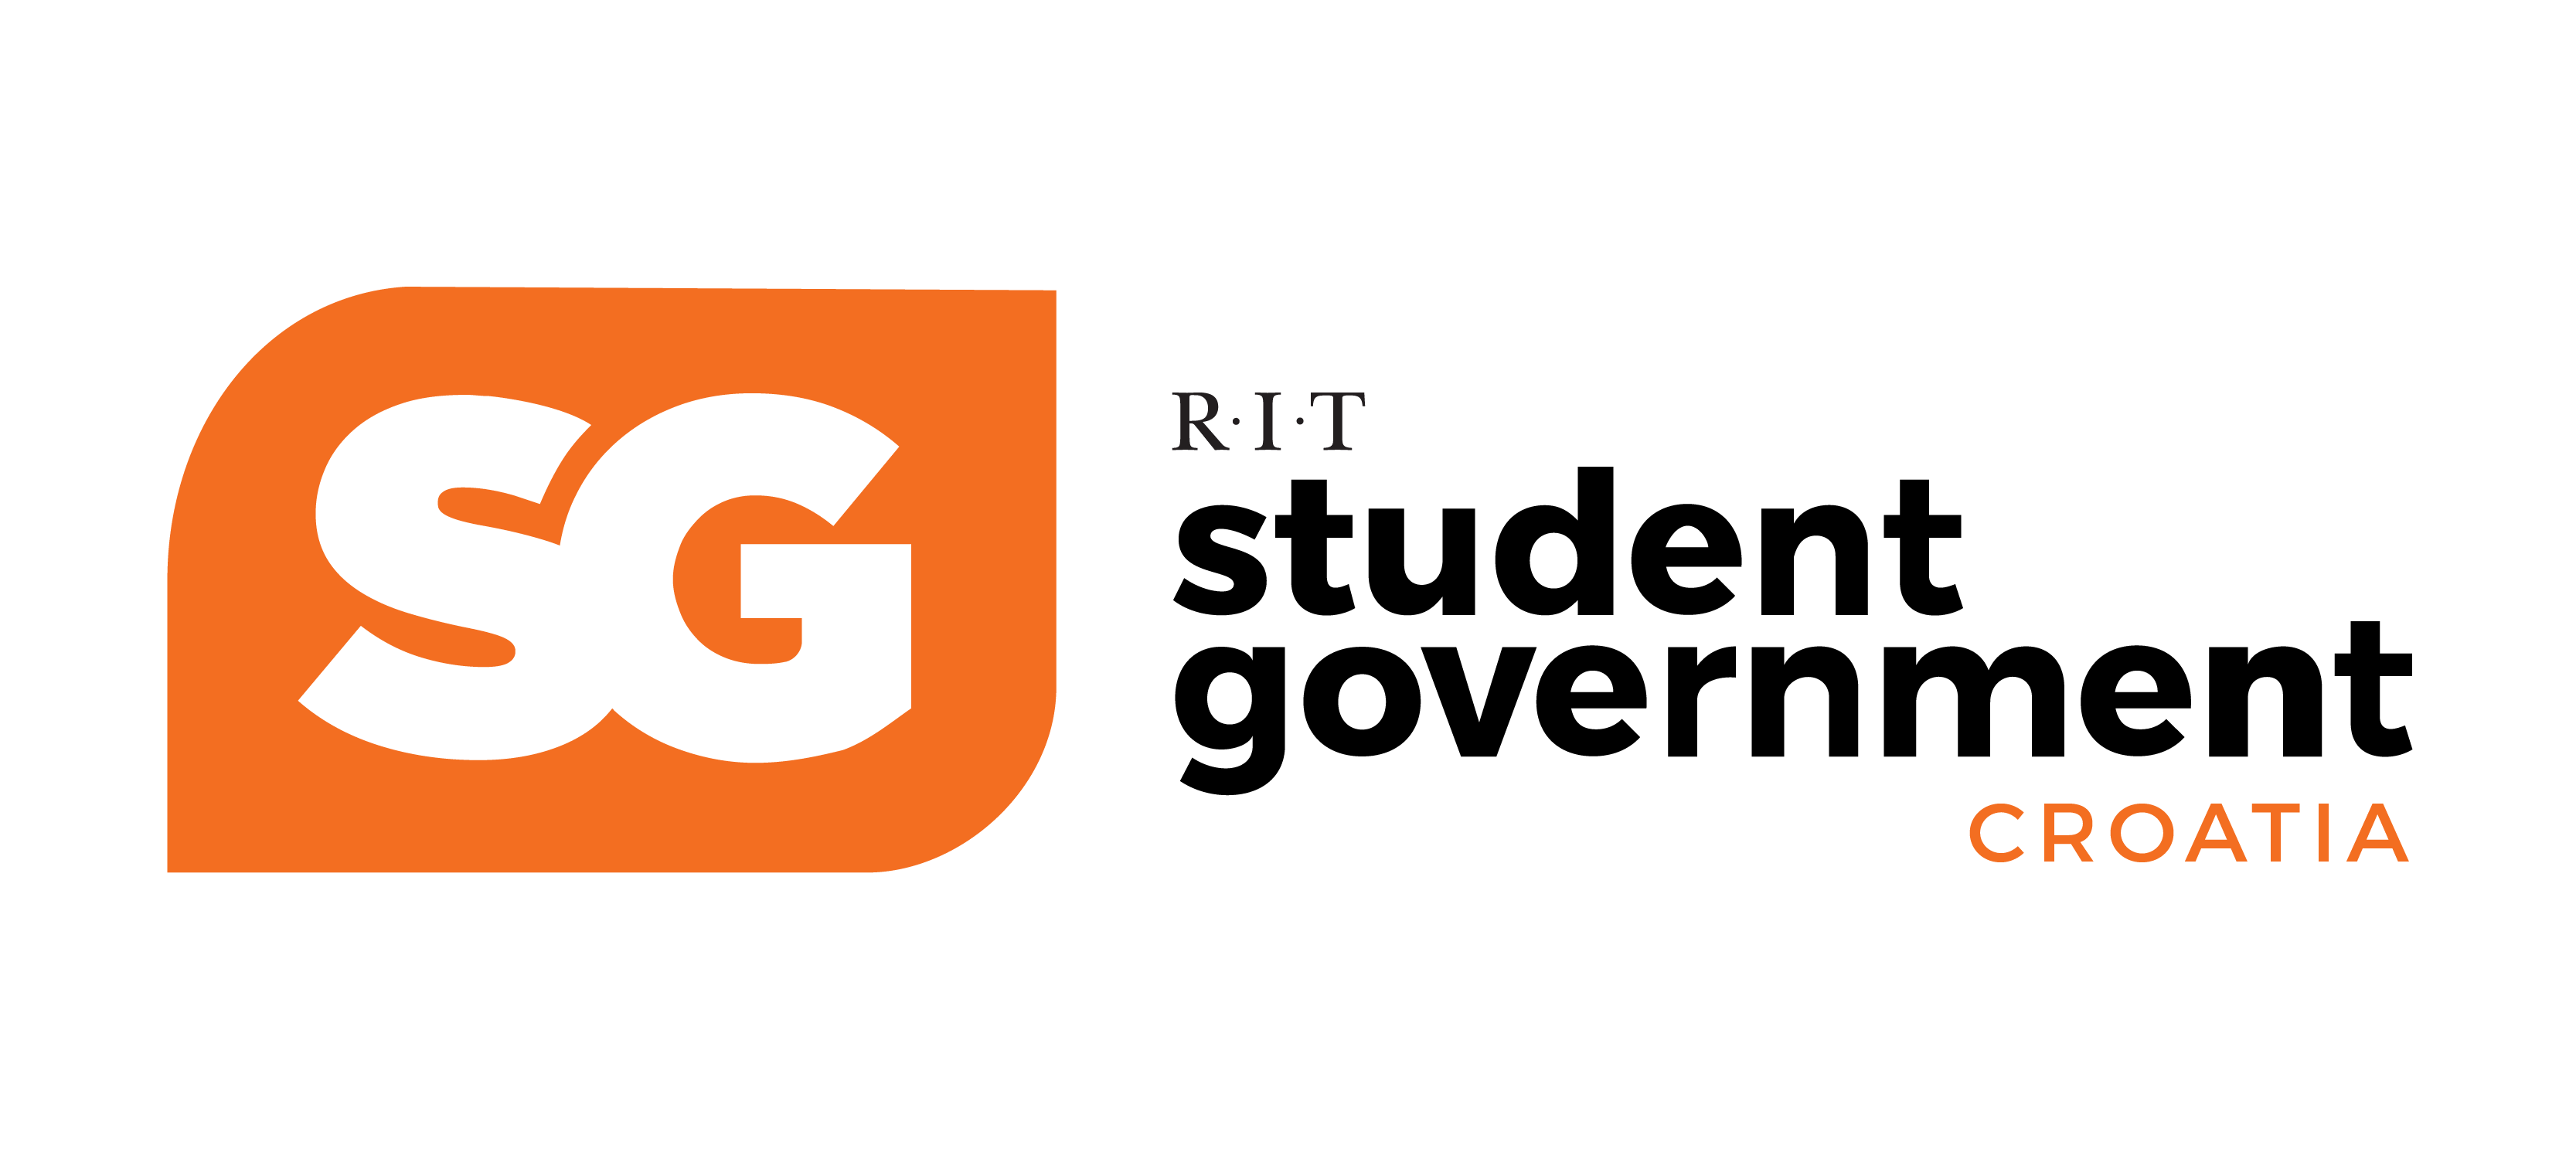 Create png from jpg. Sg logos rit student